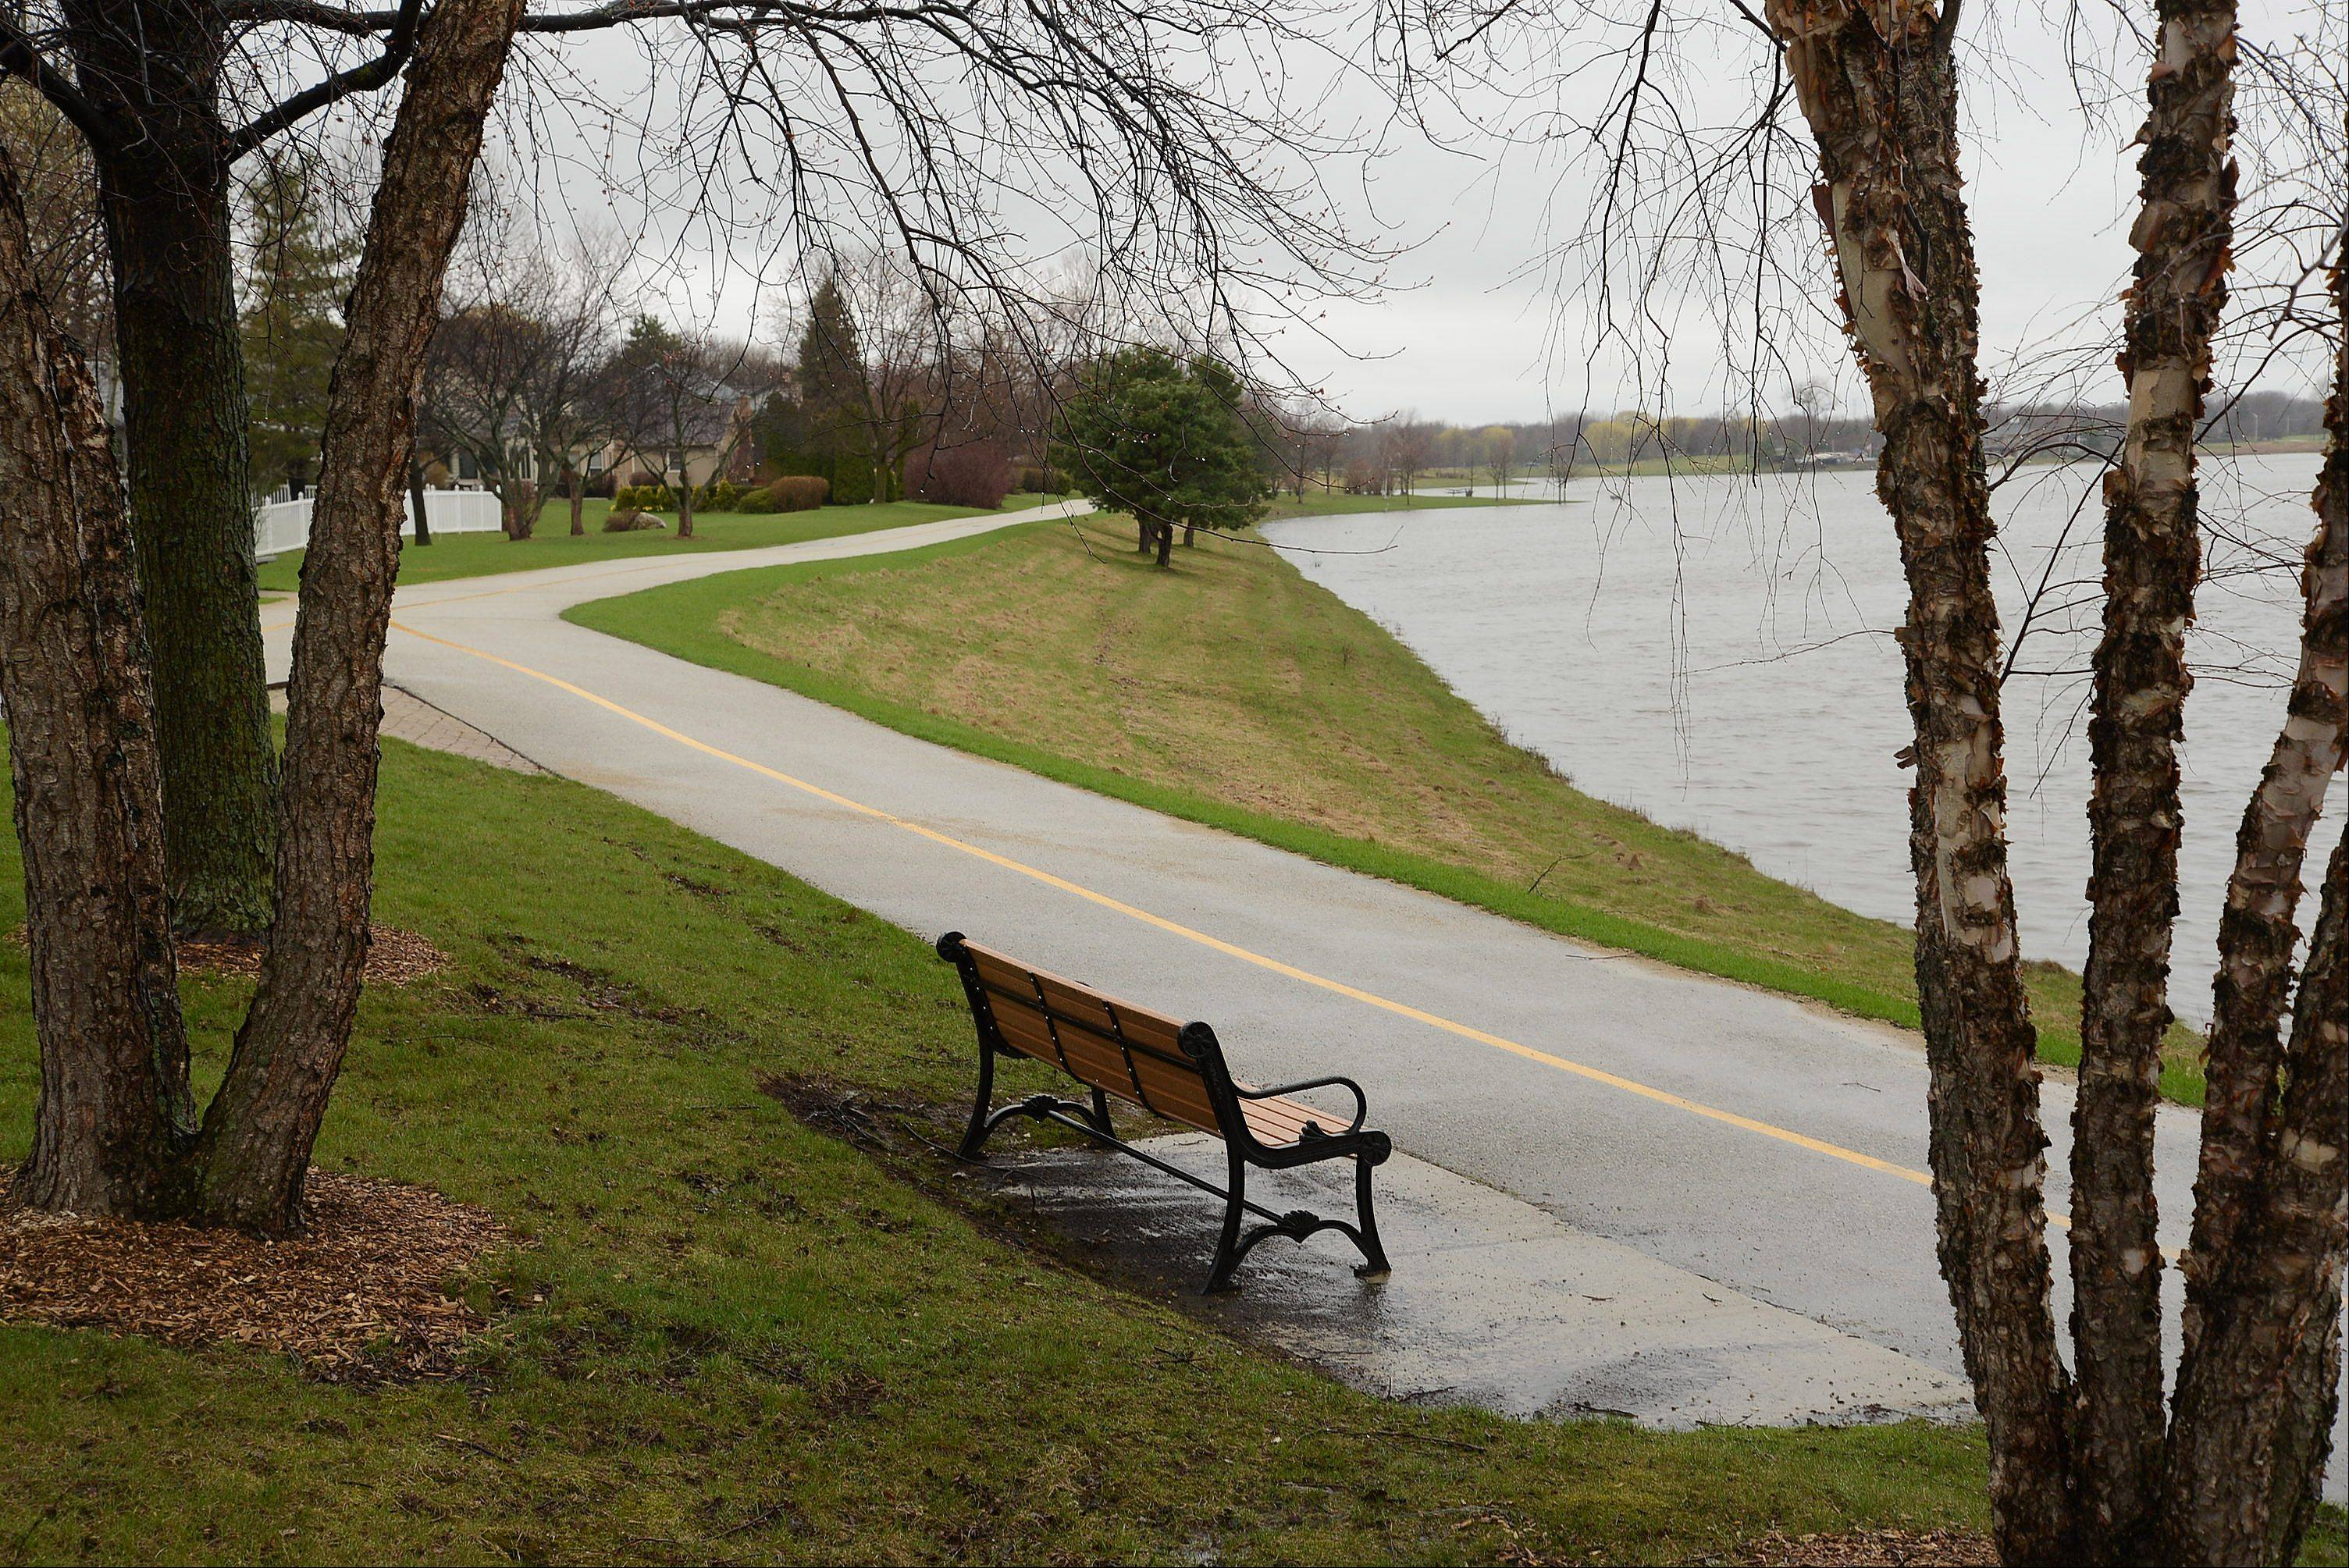 Some changes are being made Lake Arlington following the death of a pedestrian last month.